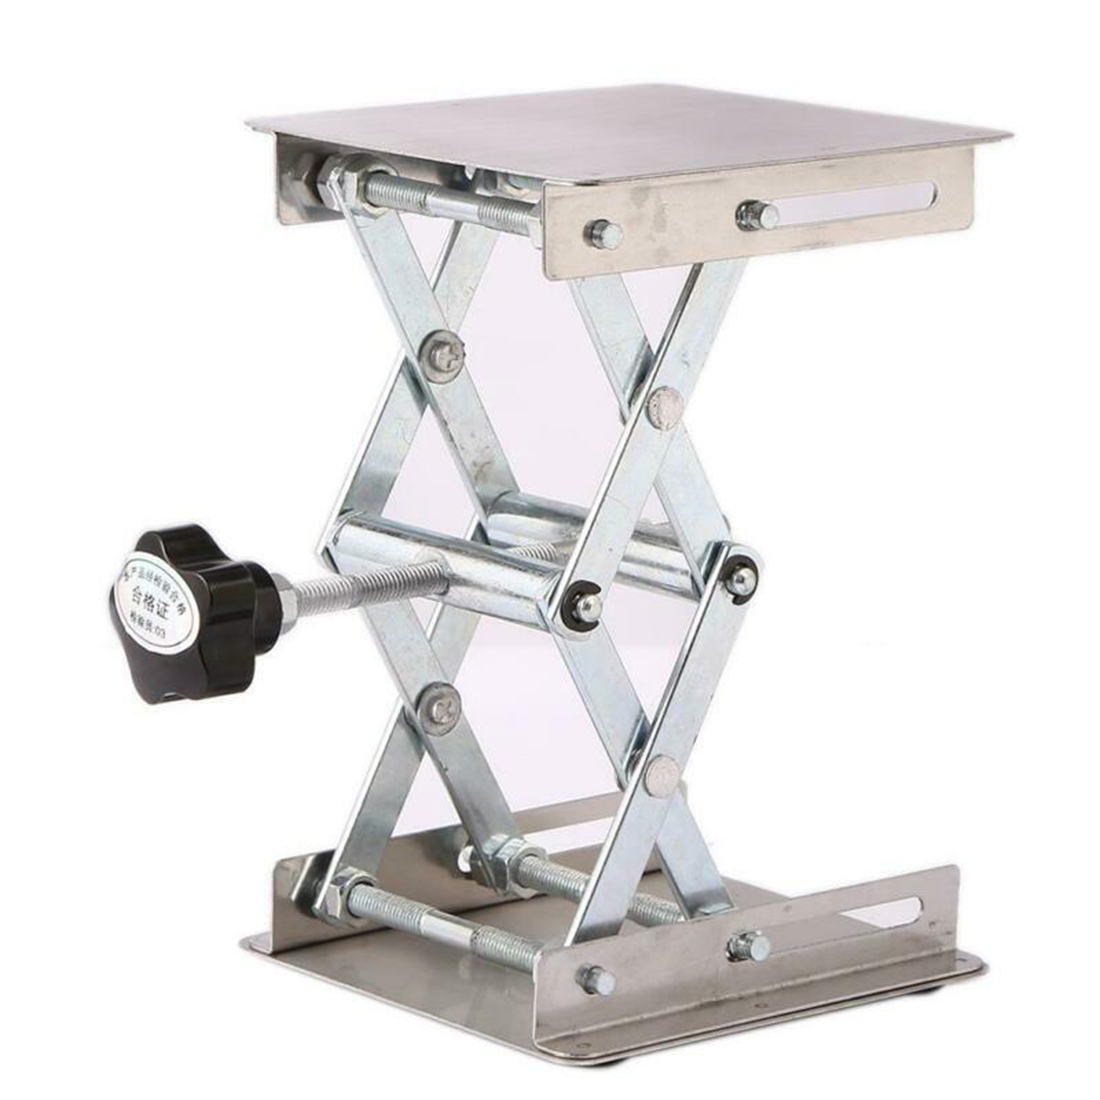 Tool Lift Table Stainless Steel <font><b>Router</b></font> Woodworking <font><b>Lifter</b></font> Lifting Base image